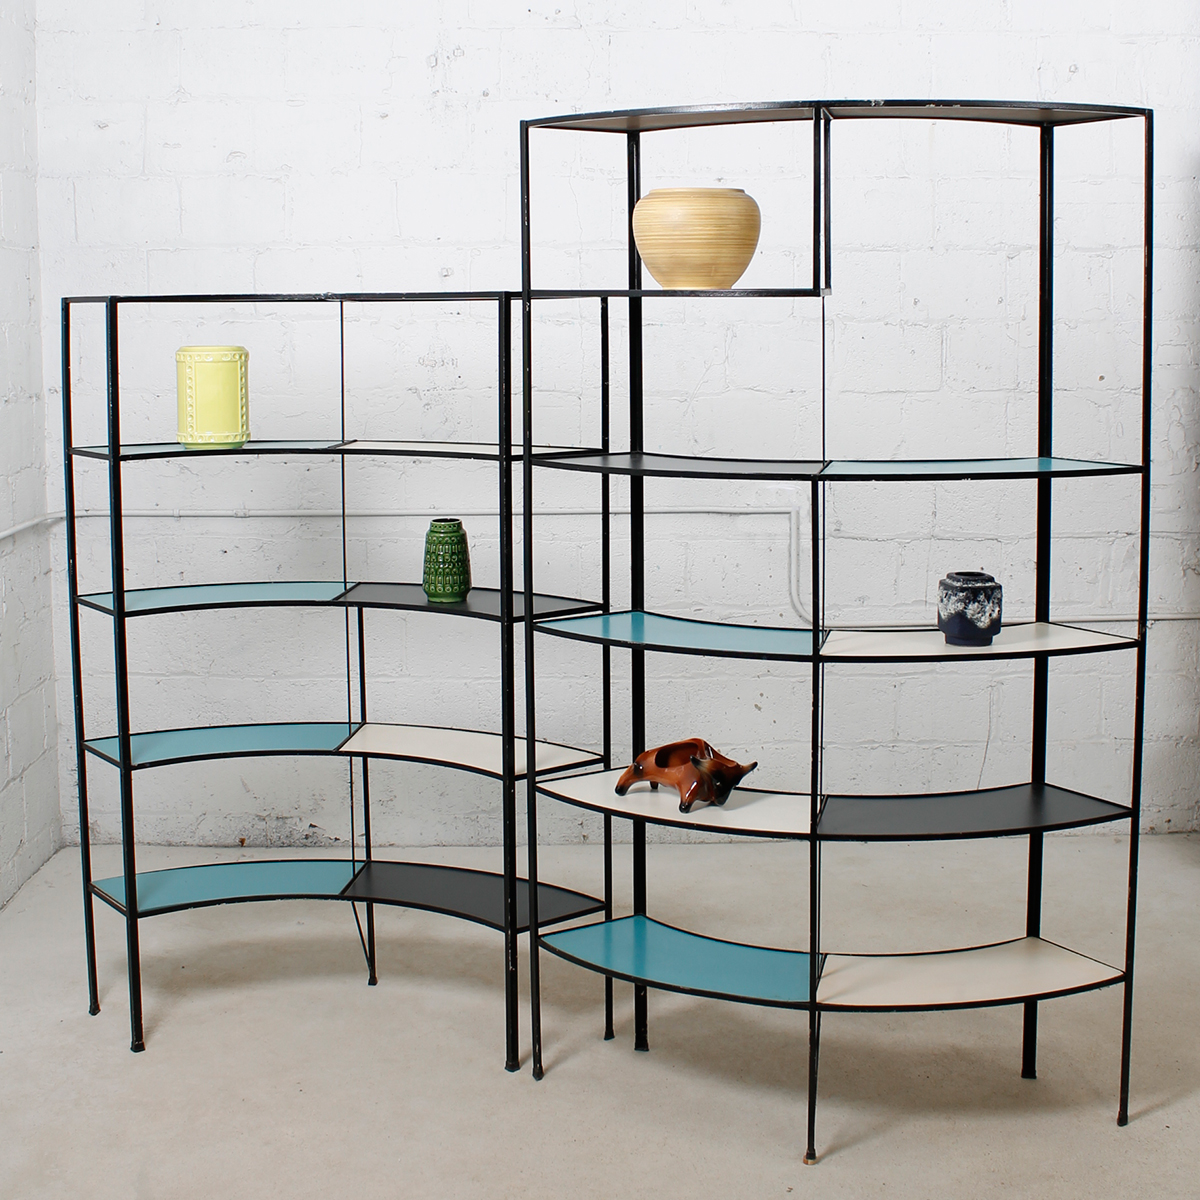 Rare Set of Frederick Weinberg Multi-Color Curved Shelving Units